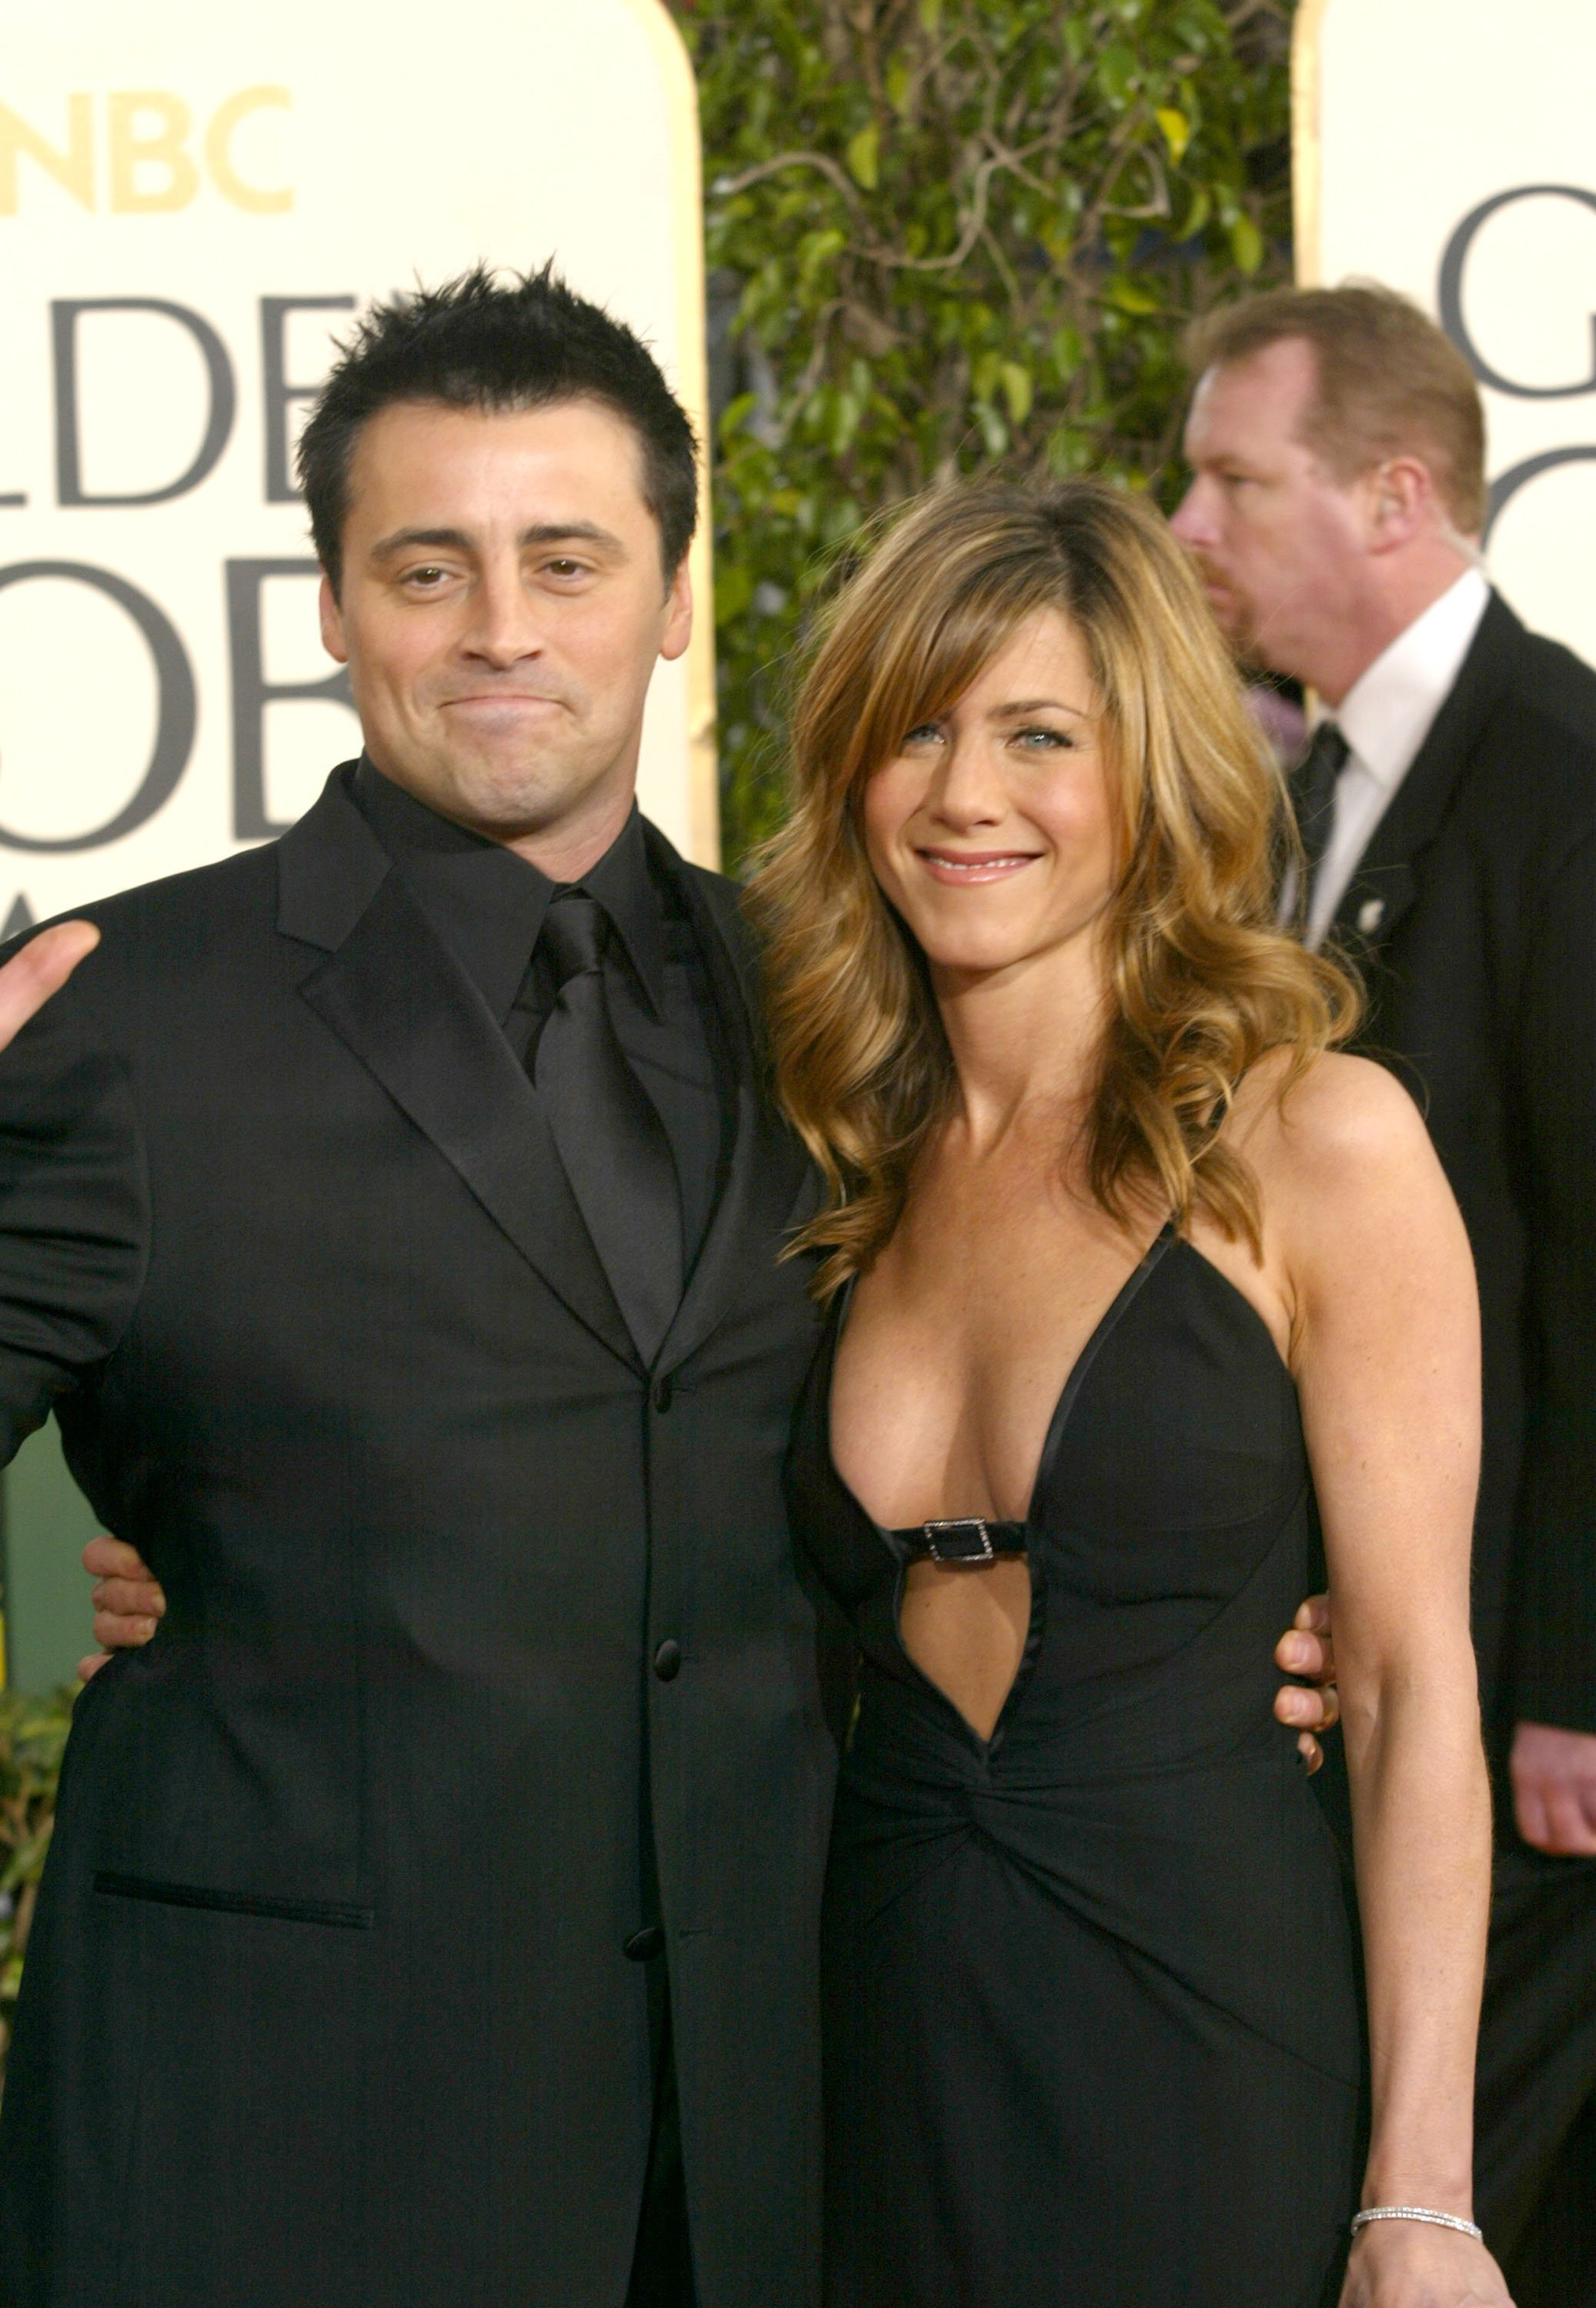 Matt Leblanc and Jennifer Aniston pose together at the Annual Golden Globe Awards in Beverly Hills, California on January 25, 2004 | Photo: Getty Images